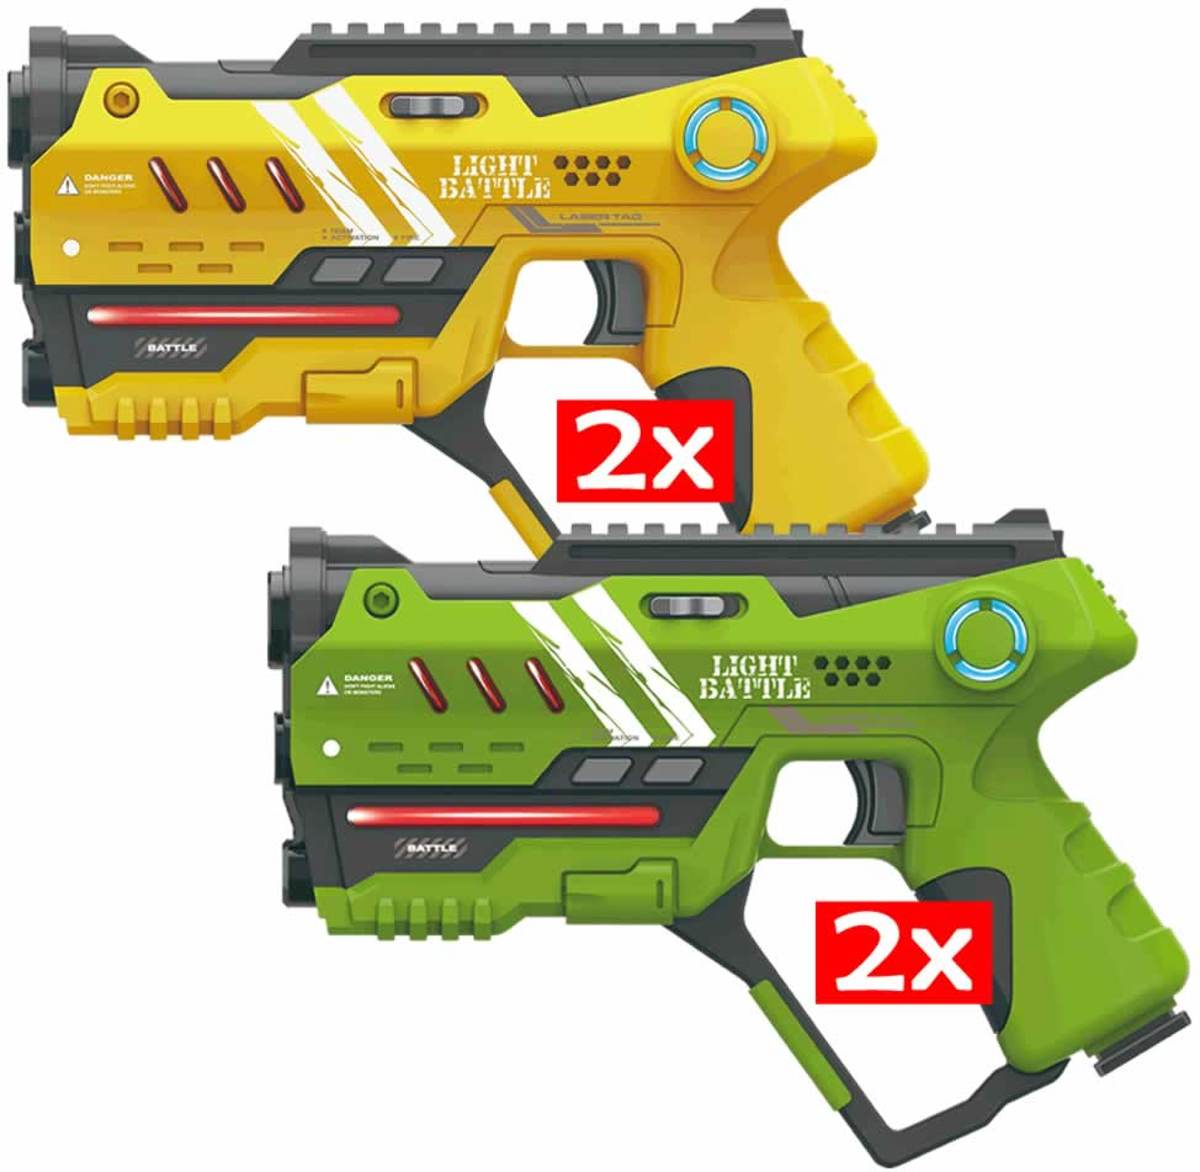 Anti-Cheat Lasergame pistolen set - 2x geel en 2x groen